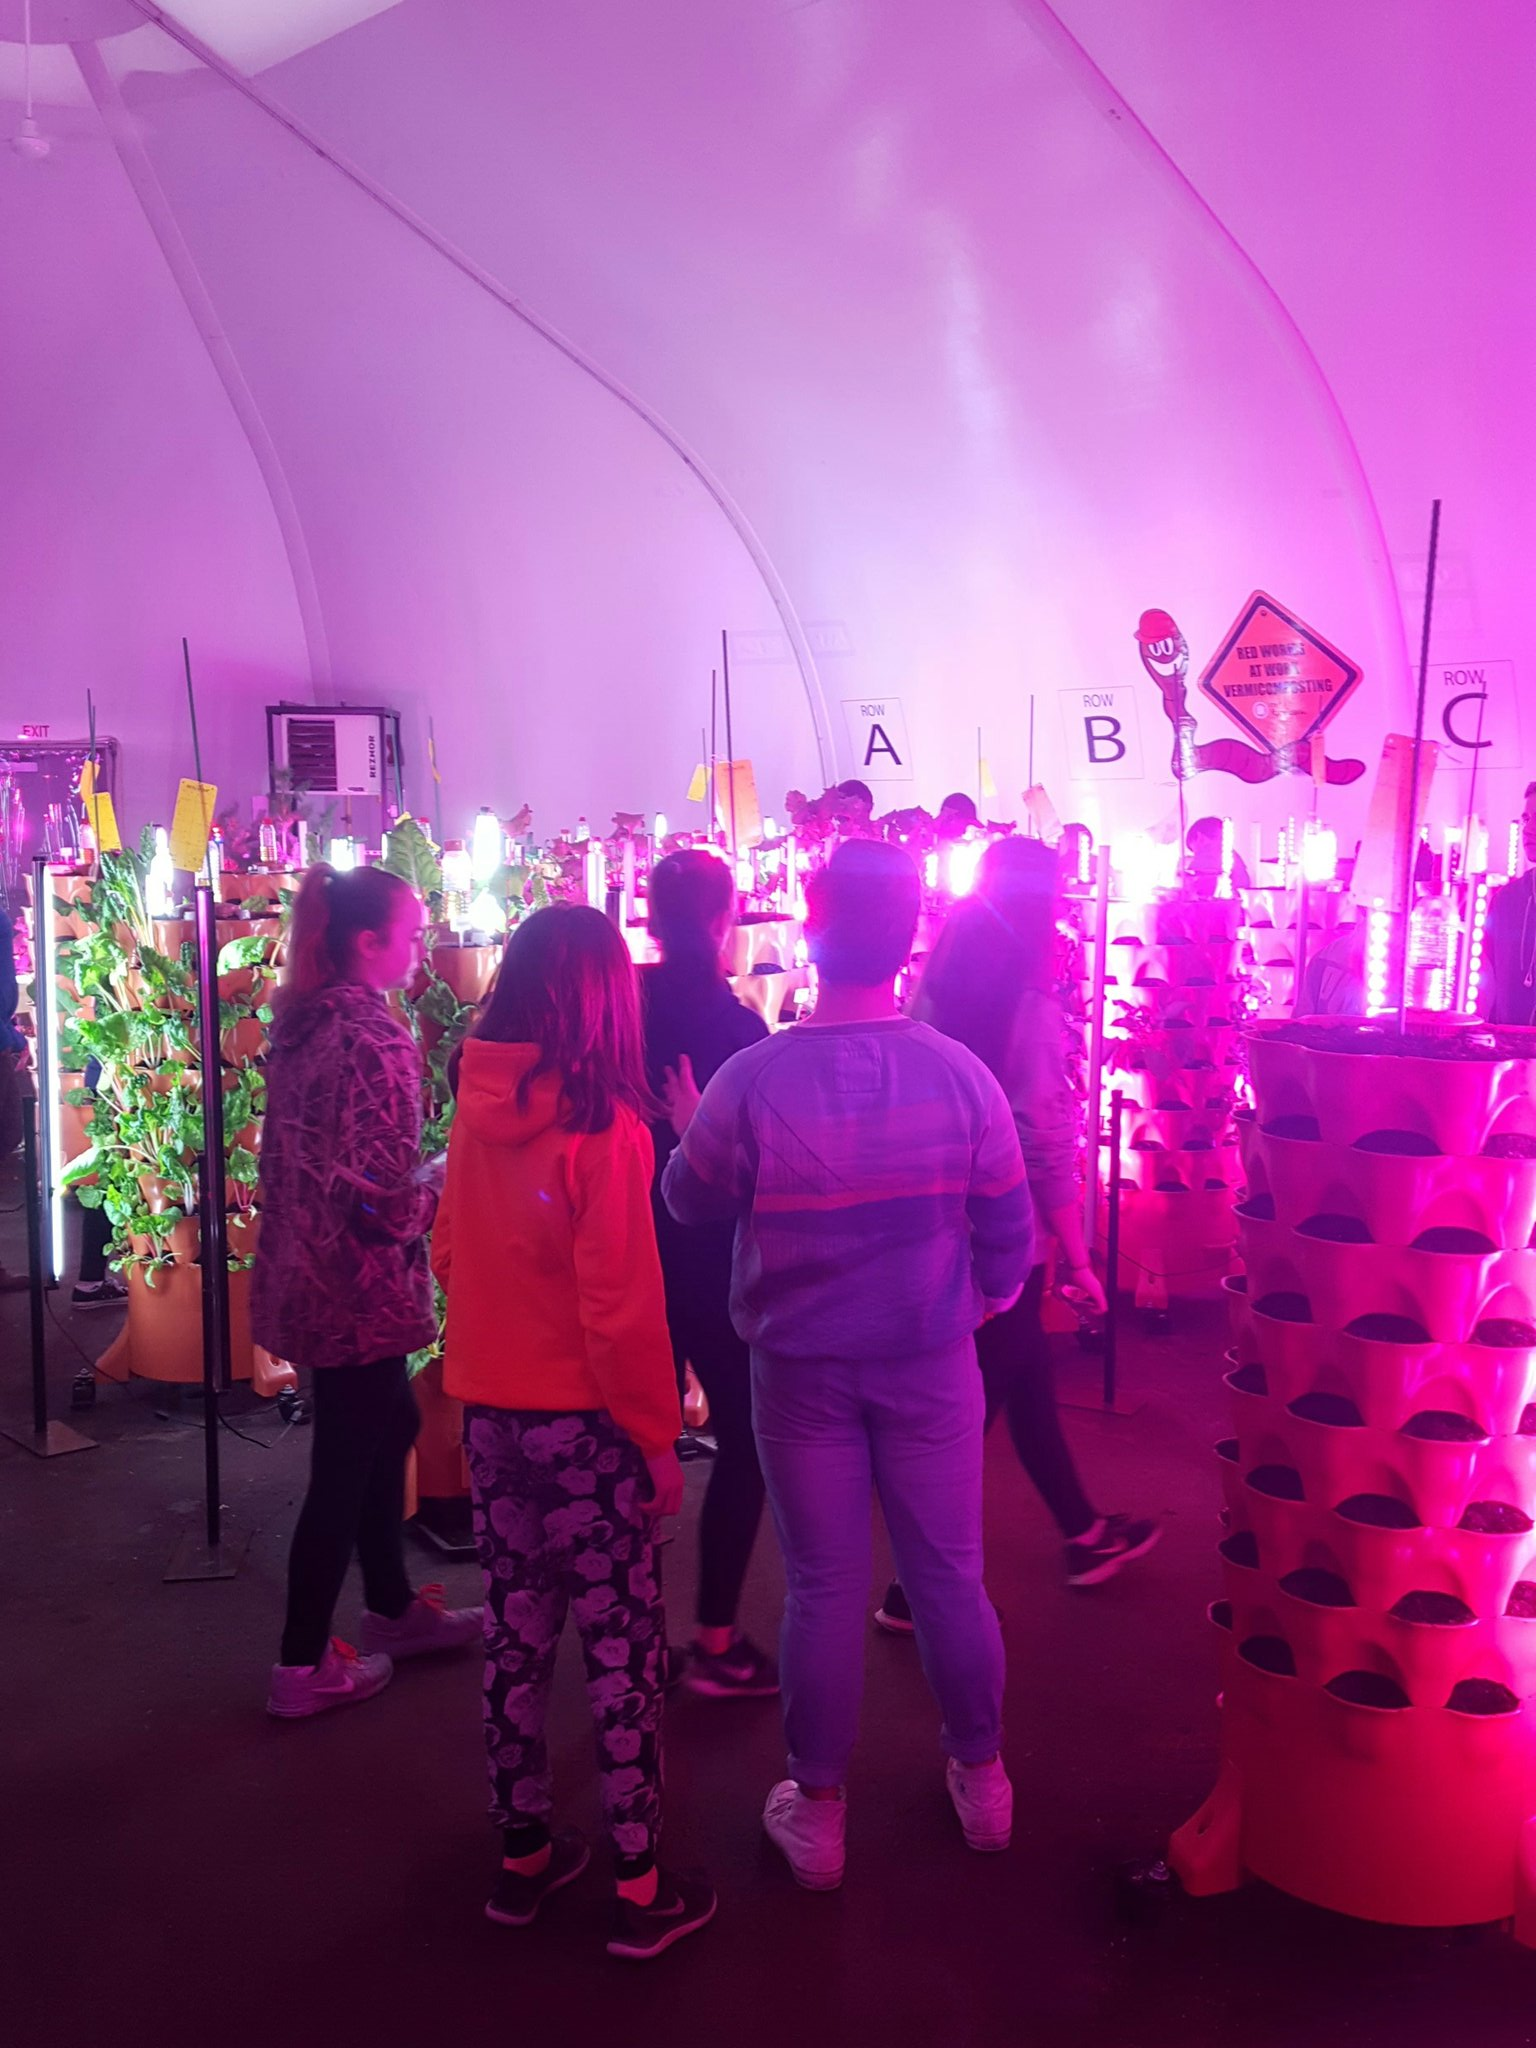 We got an invite to the plant party at the @ReginaFoodBank !! Students are fascinated #allofthelights @oneilltitans https://t.co/fGMU9OLDIQ